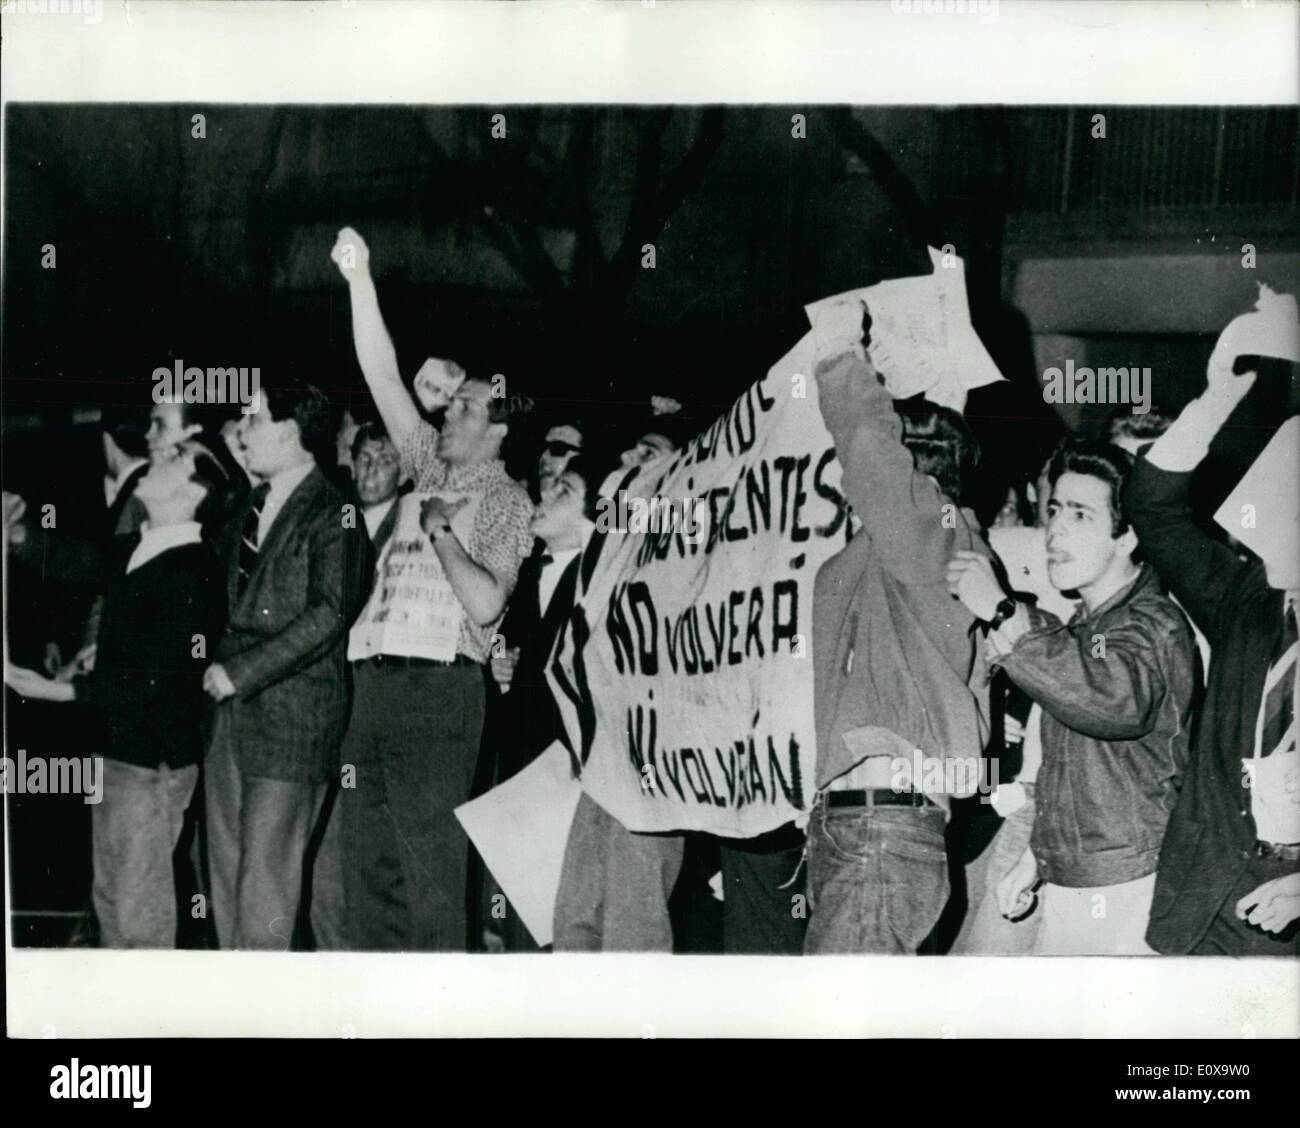 Oct. 10, 1965 - Demonstrations In Argentina: More than 600 people were arrested on Sunday night, as police fought with thousands of followers of exiled dictator, Juan Peron. A rally to mark the rise to power of Peron 20 years ago, was banned following rioting last week triggered by the visit of Peron's young wife, Isabel. Senora Peron, 32, arrived in Buenos Aires to campaign for her 70-year old husband's ''peaceful'' return by legal means'' from his exile in Madrid. She left the city on Friday for an unknown destination - Stock Image